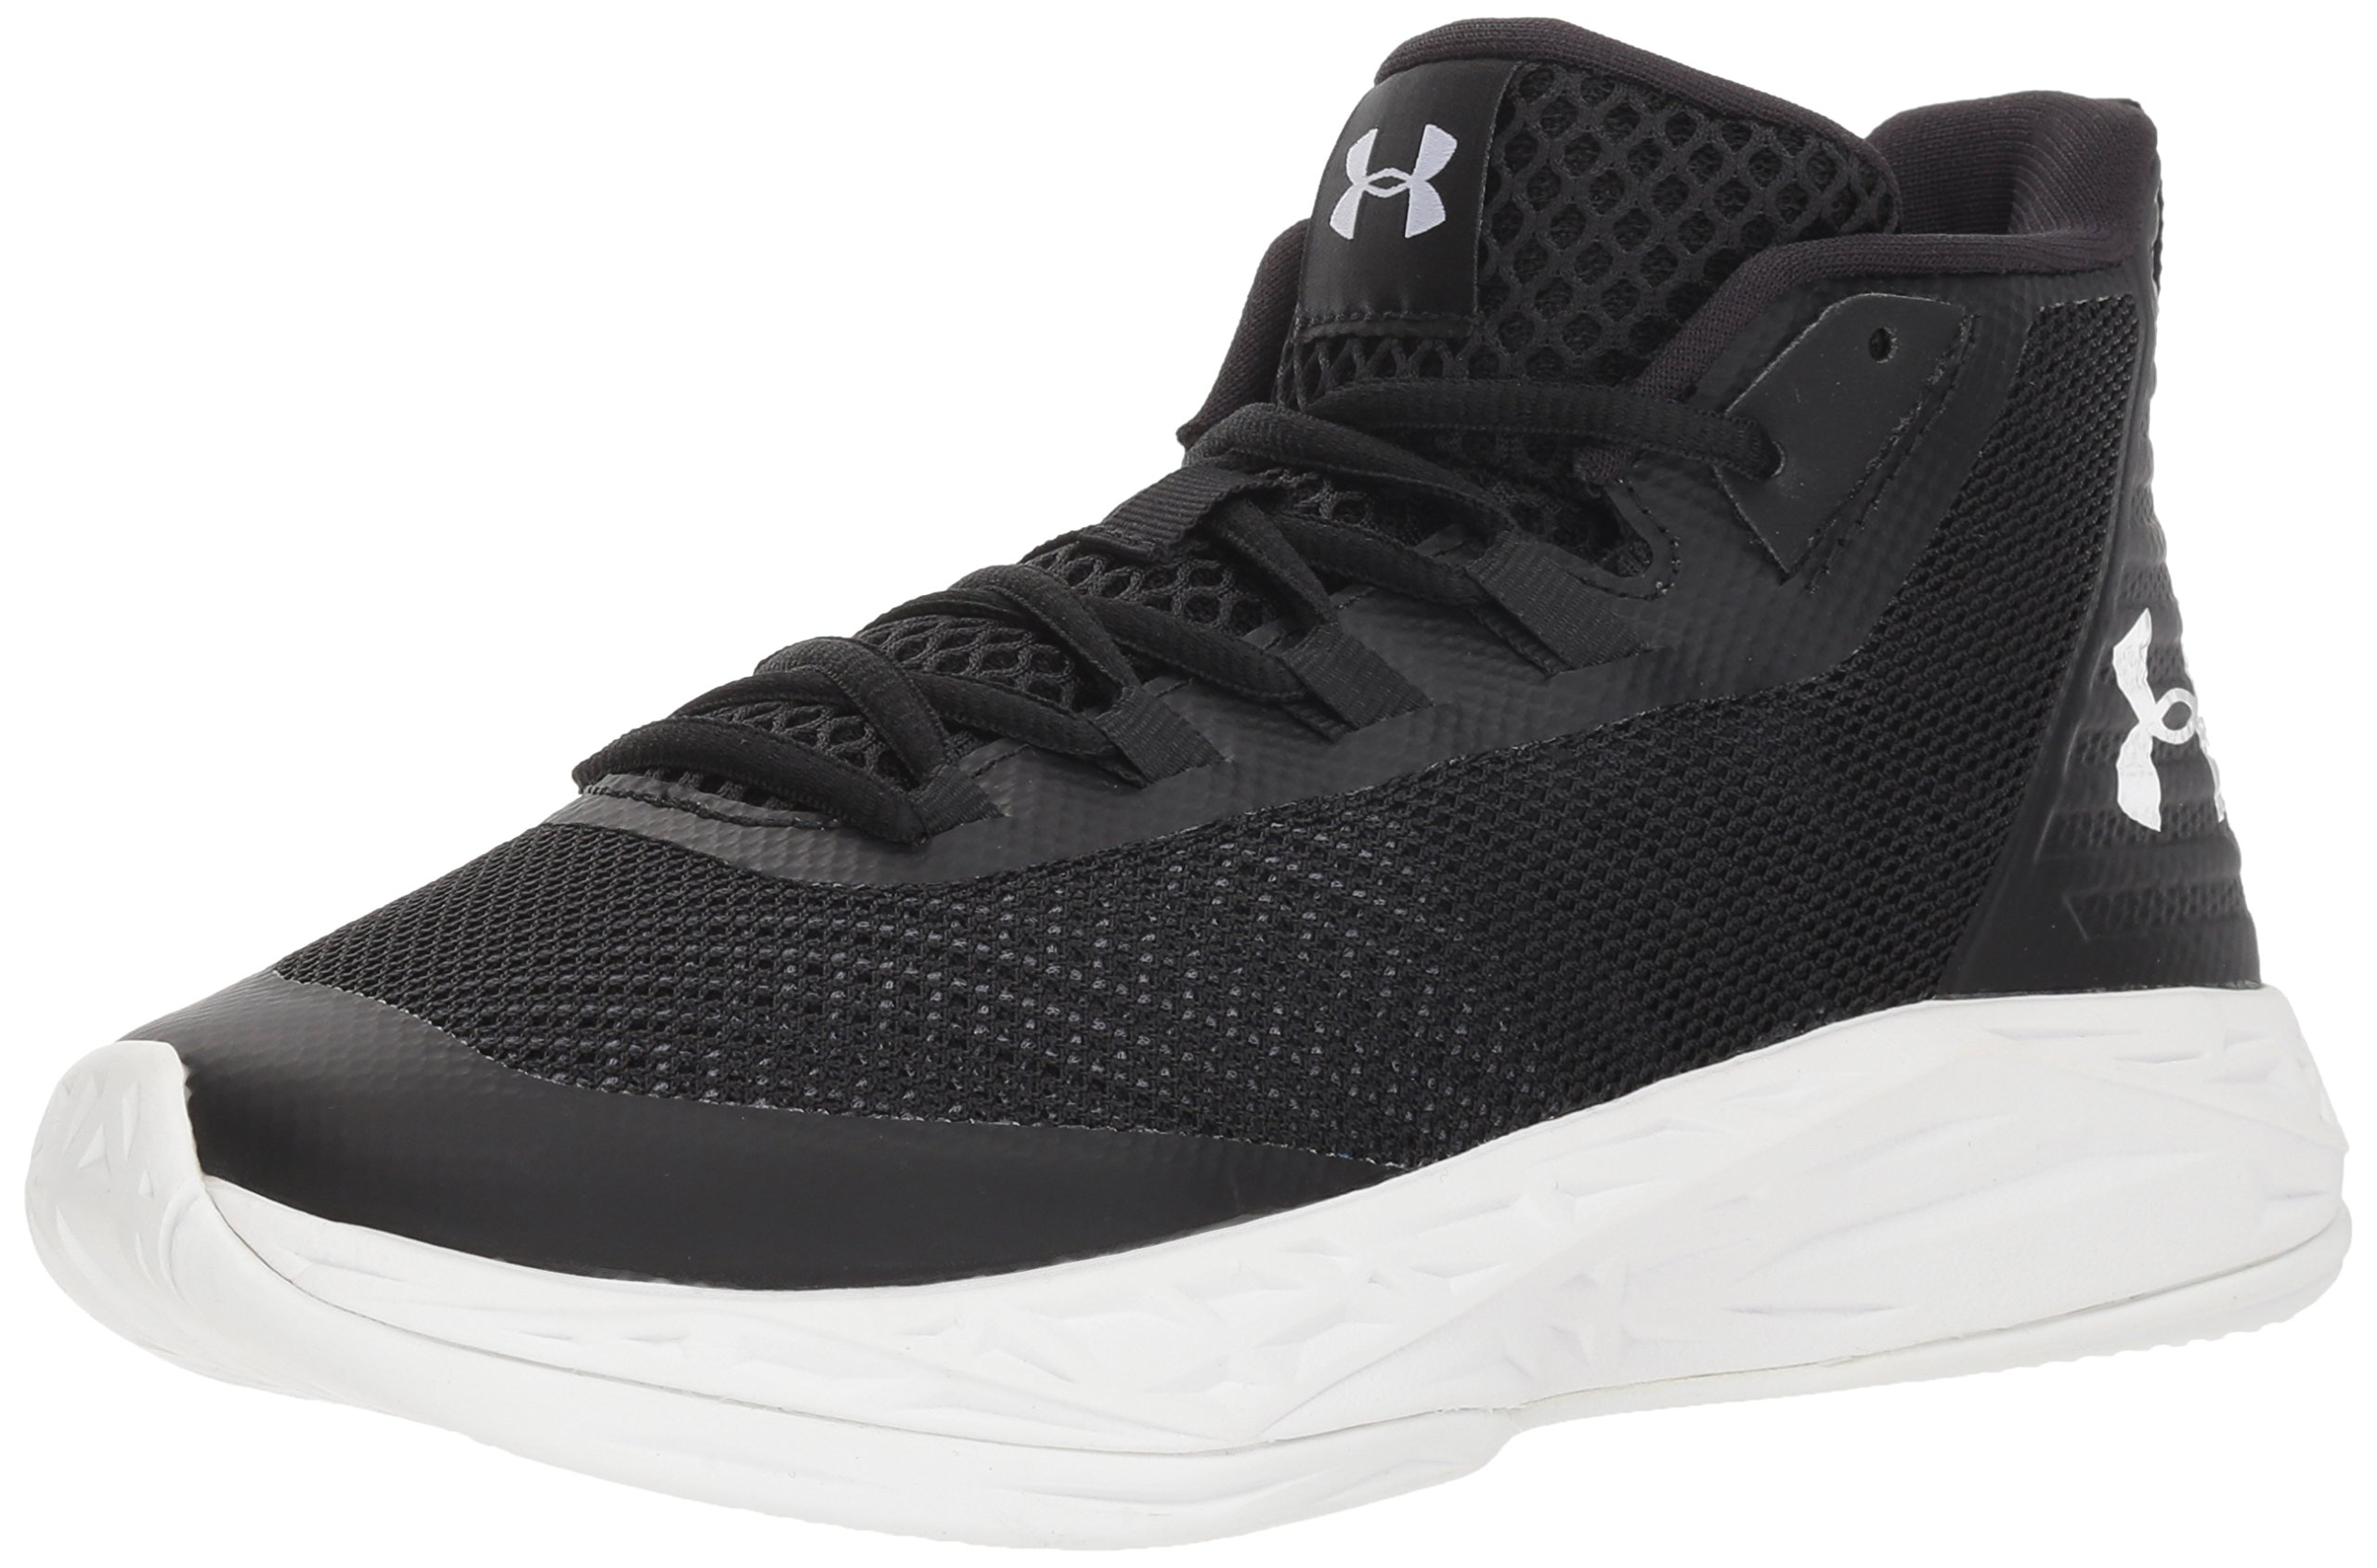 Under Armour Women's Jet Mid Basketball Shoe, Black (002)/White, 7 by Under Armour